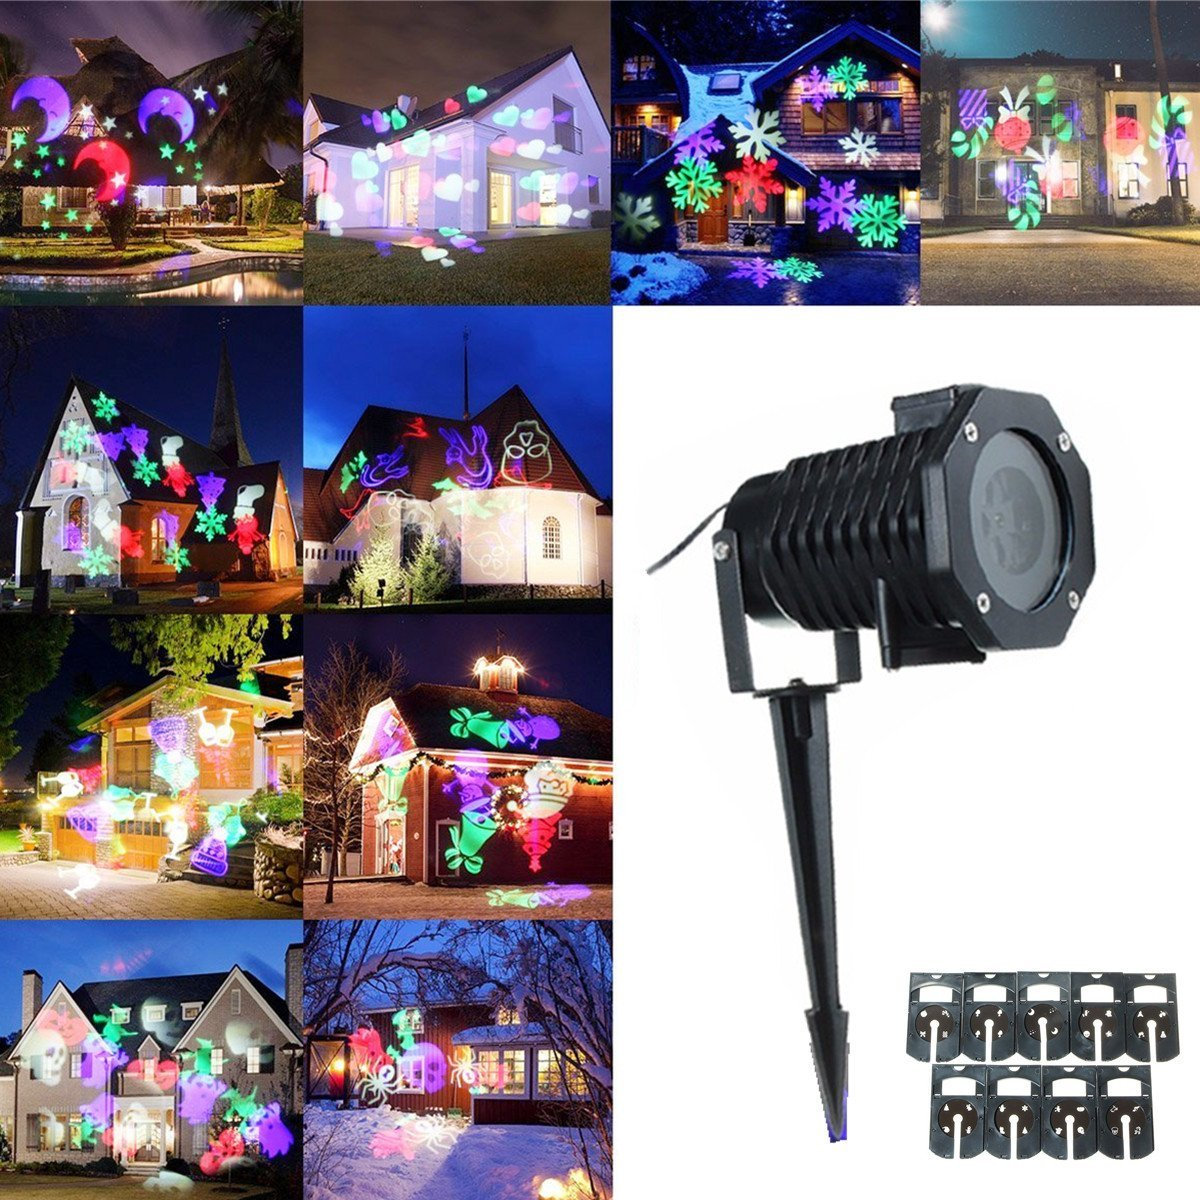 Projecteur led exterieur pour noel sofag for Projecteur led decoration noel exterieur